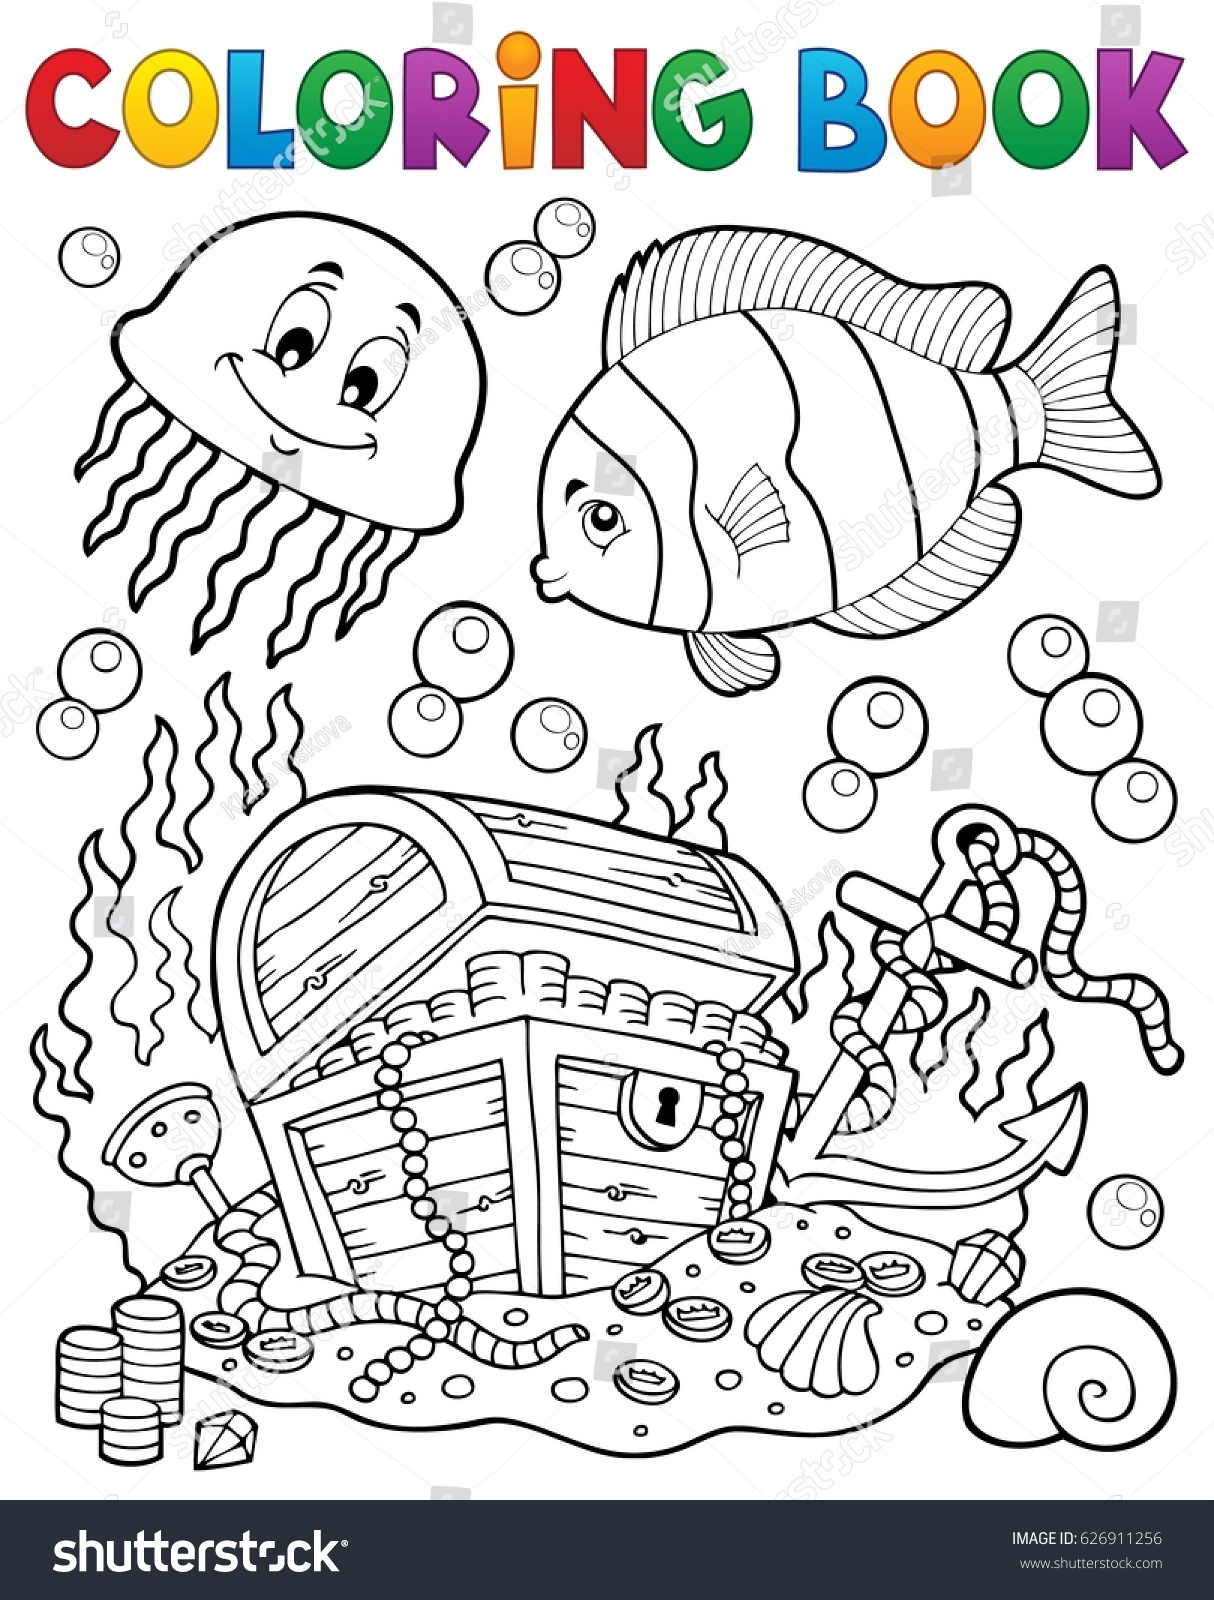 Underwater colouring - Coloring Book Treasure Chest Underwater Eps10 Vector Illustration